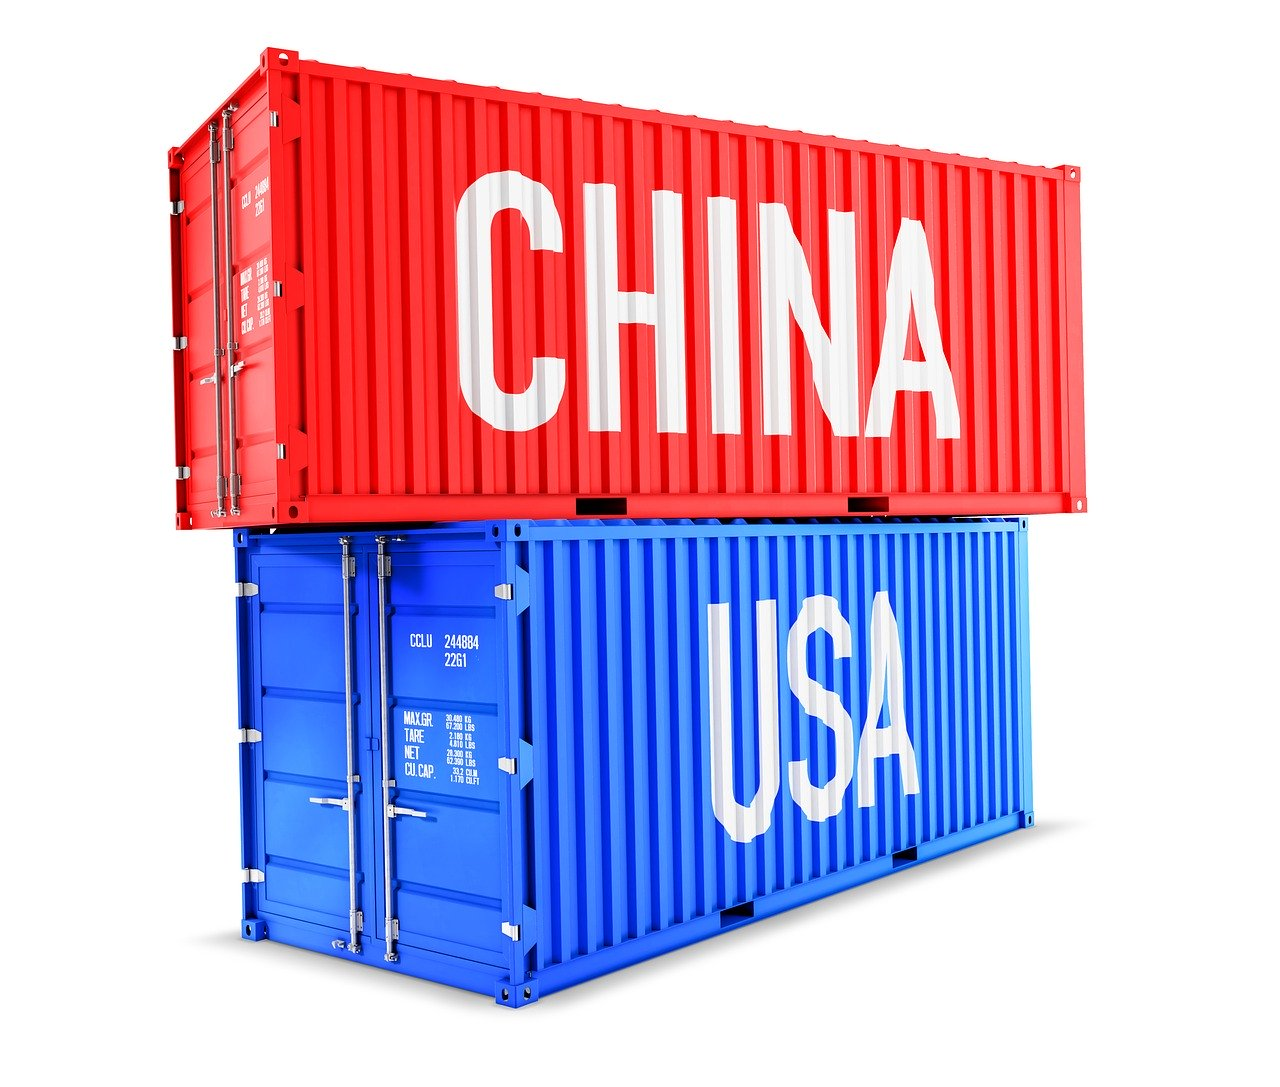 How does the US and China trade battle affect Taiwan?